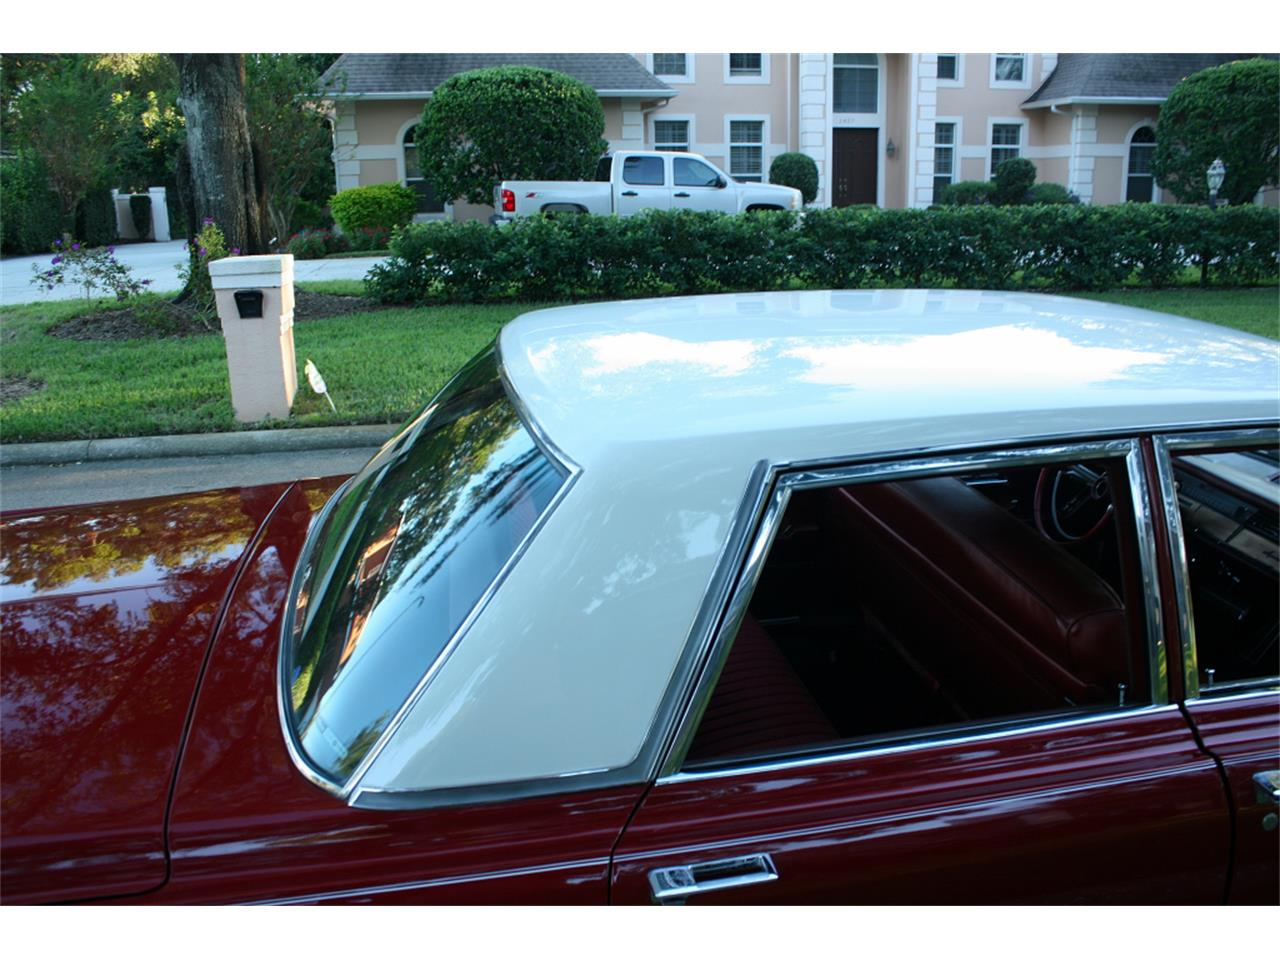 Large Picture of '68 Chrysler Imperial located in Florida - $16,500.00 - MA1H